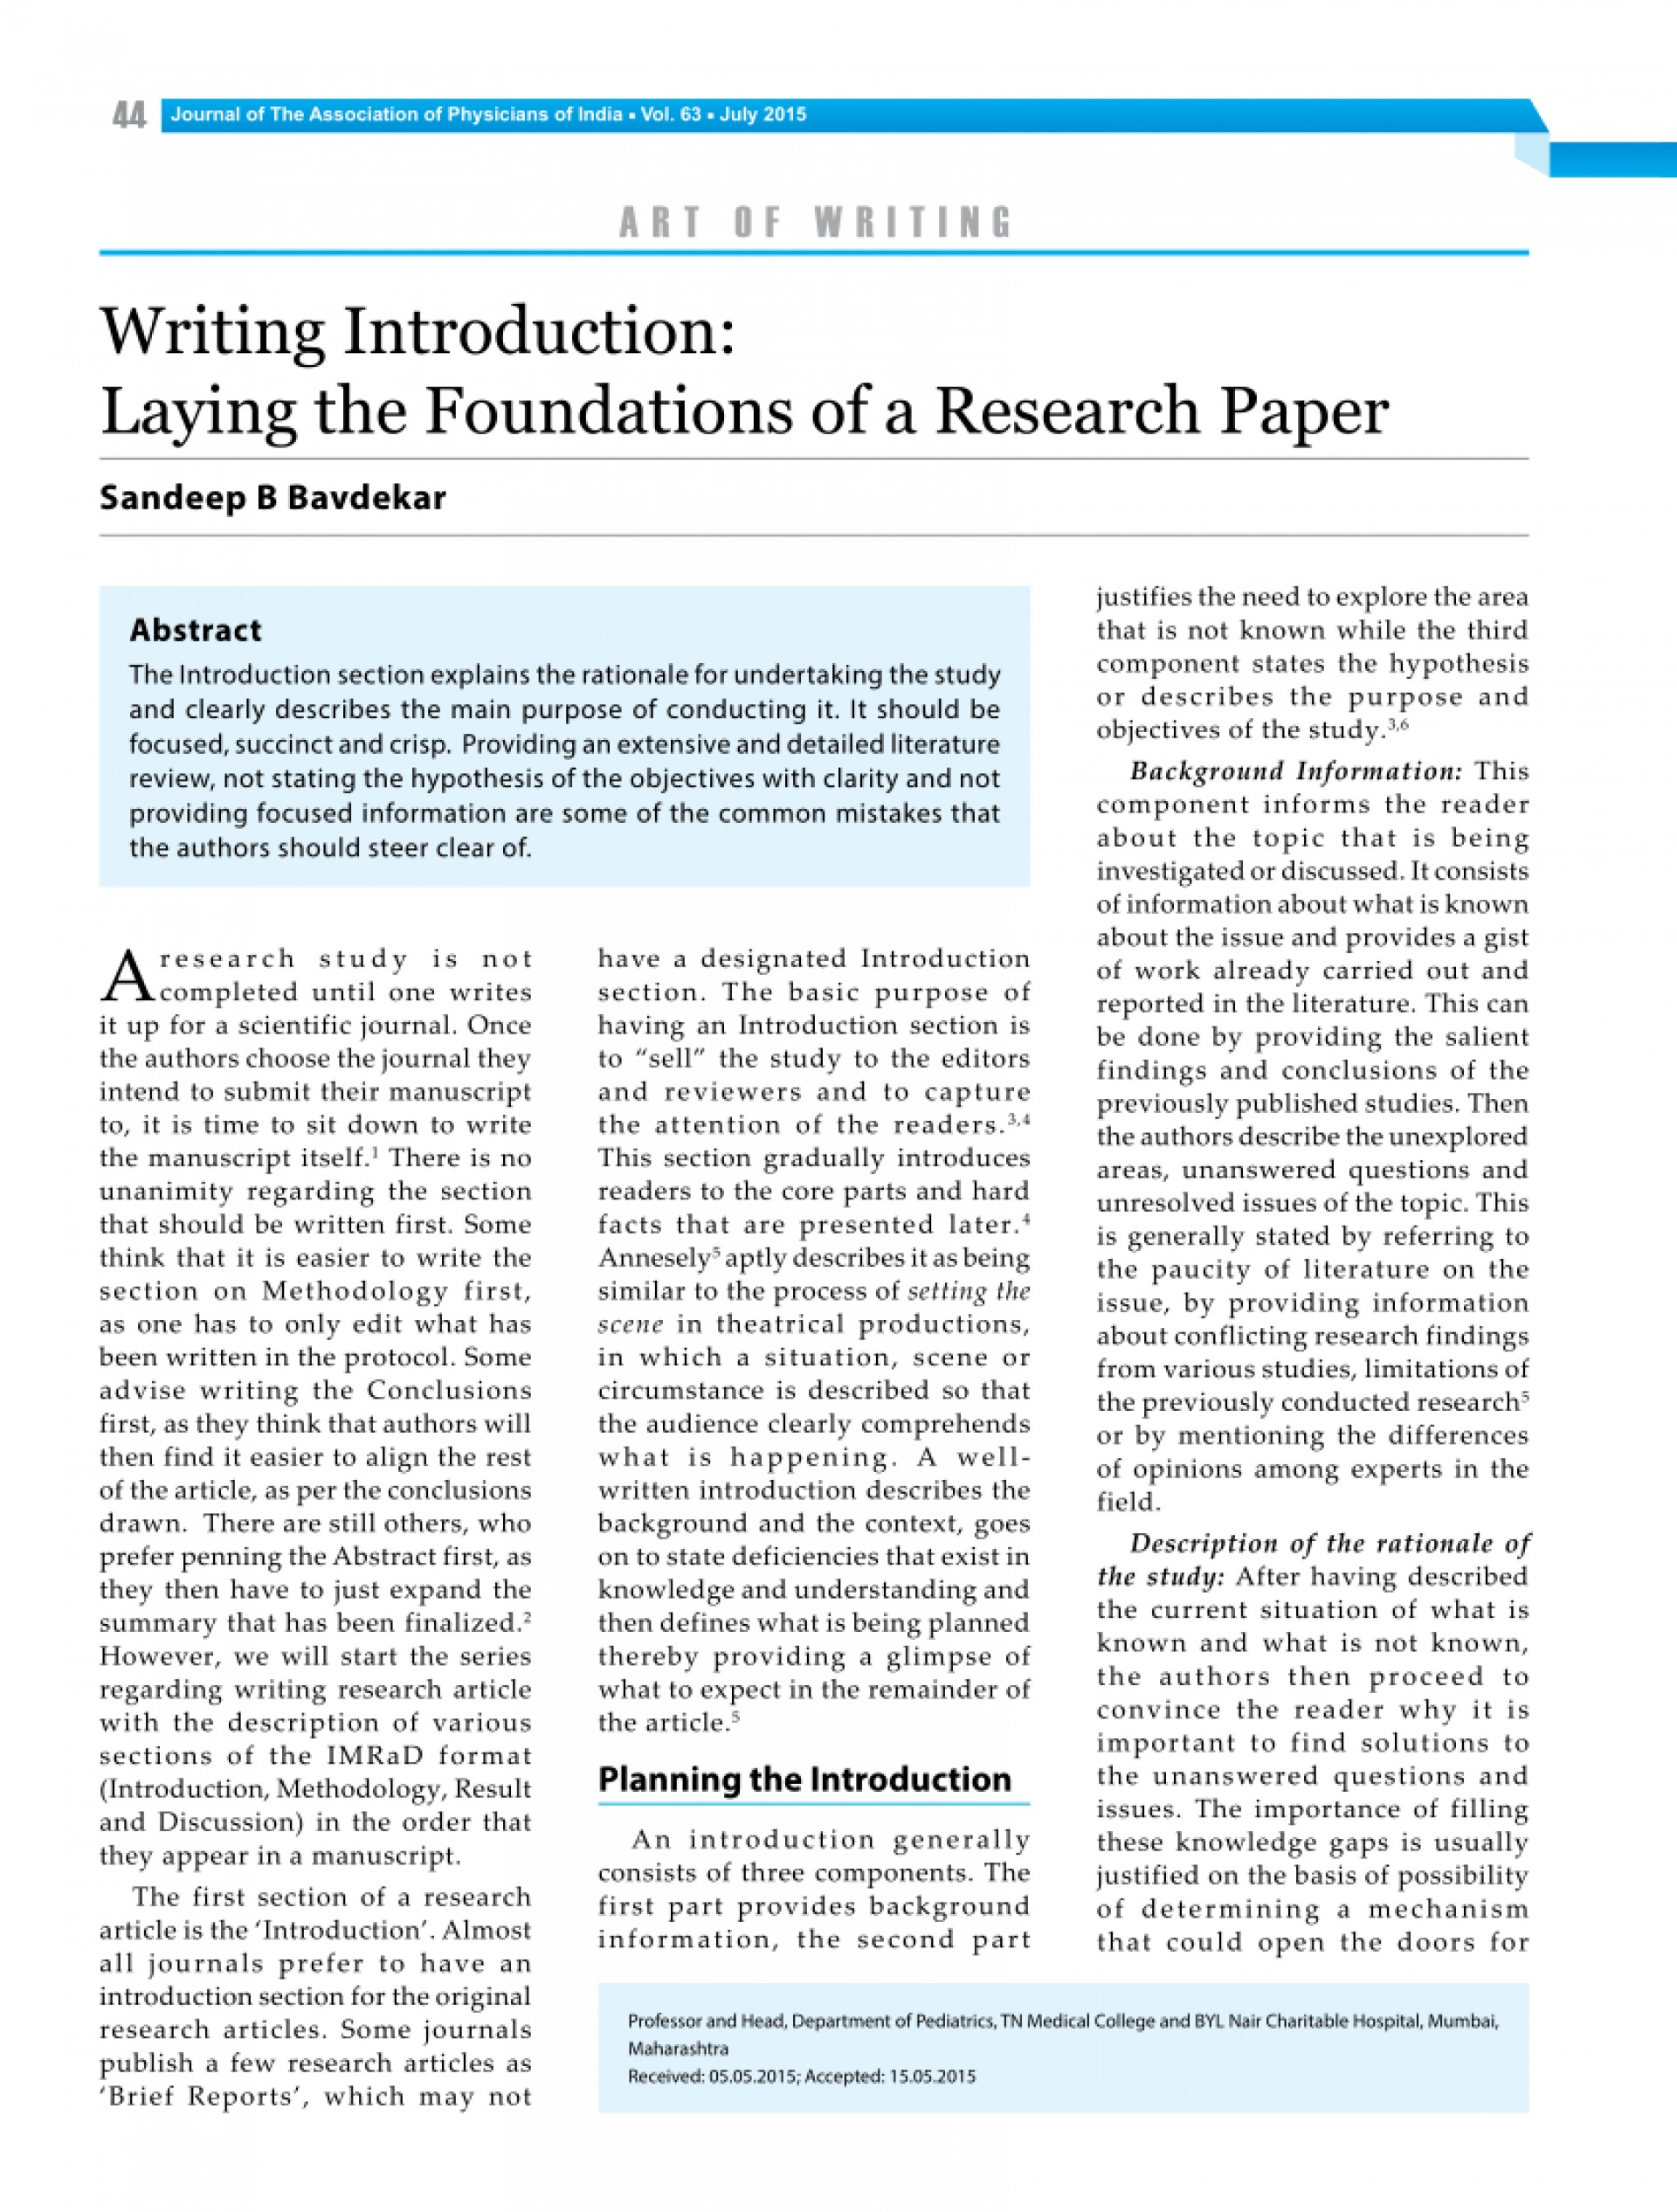 010 Largepreview Research Paper Intro To Shocking A Example Of Introduction Paragraph In Pdf How Start Writing 1920